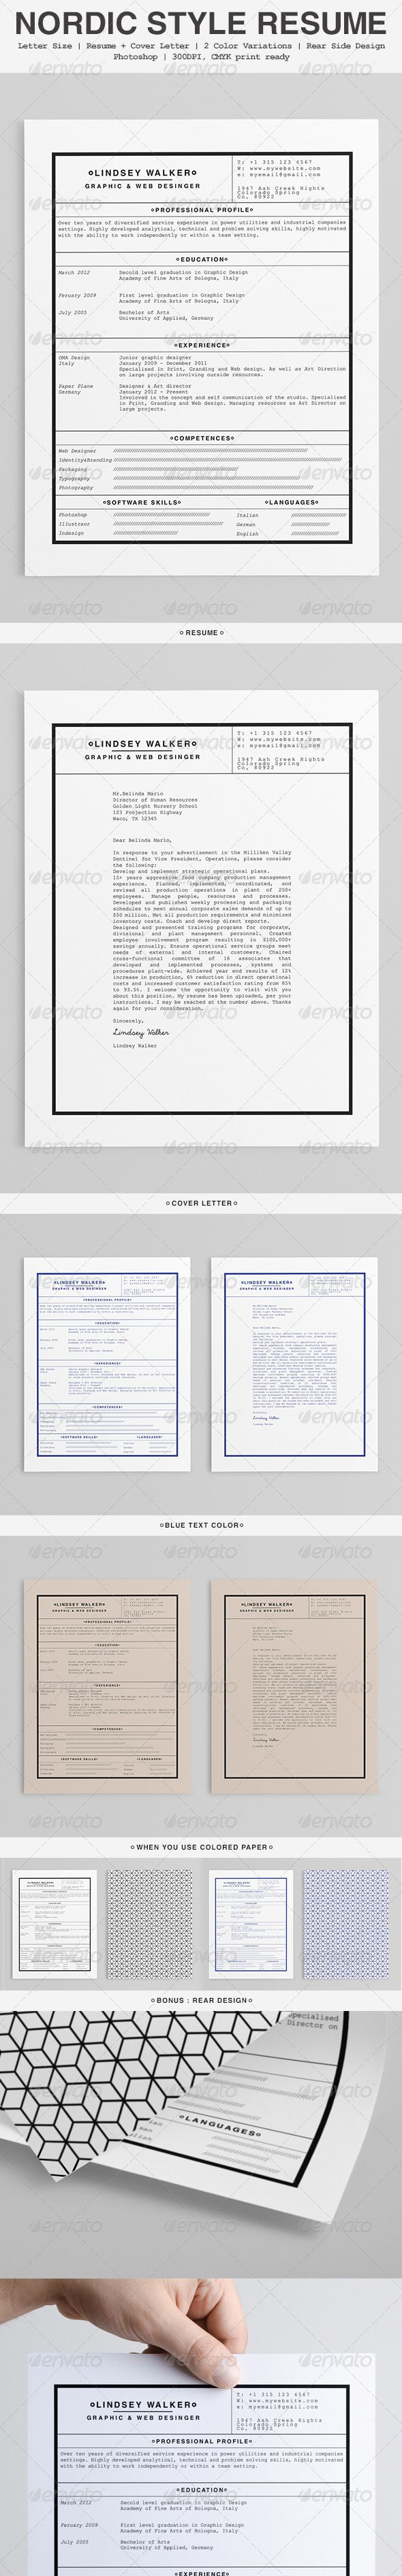 Nordic Style Minimalist Resume Template Psd Download Here Http